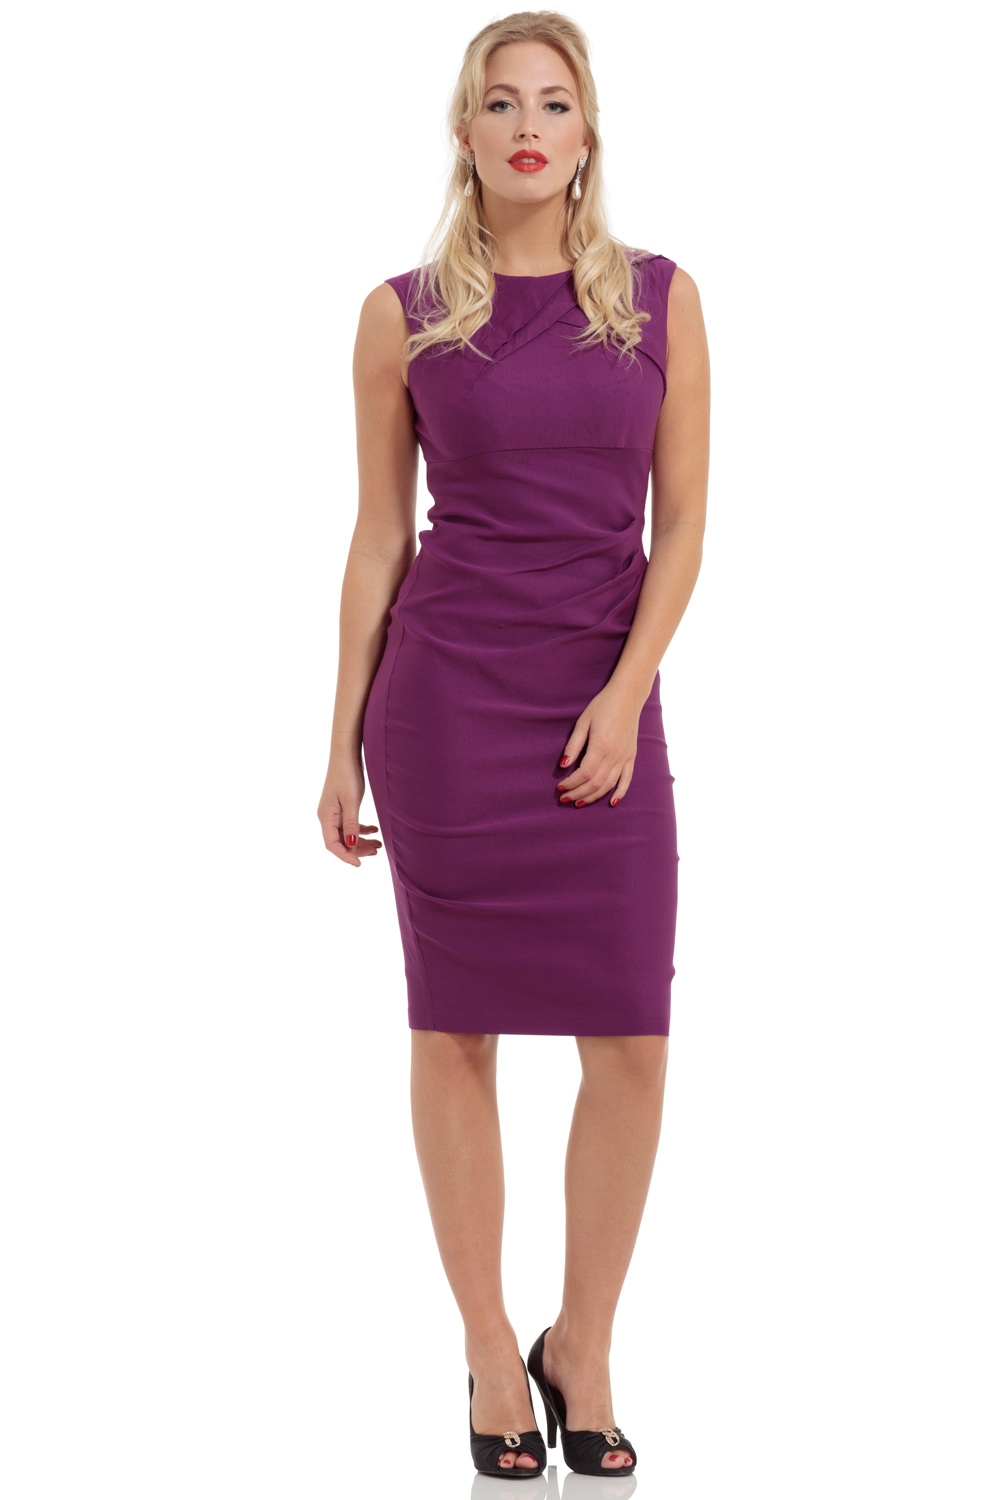 Claudette Ruche Purple Pencil Dress